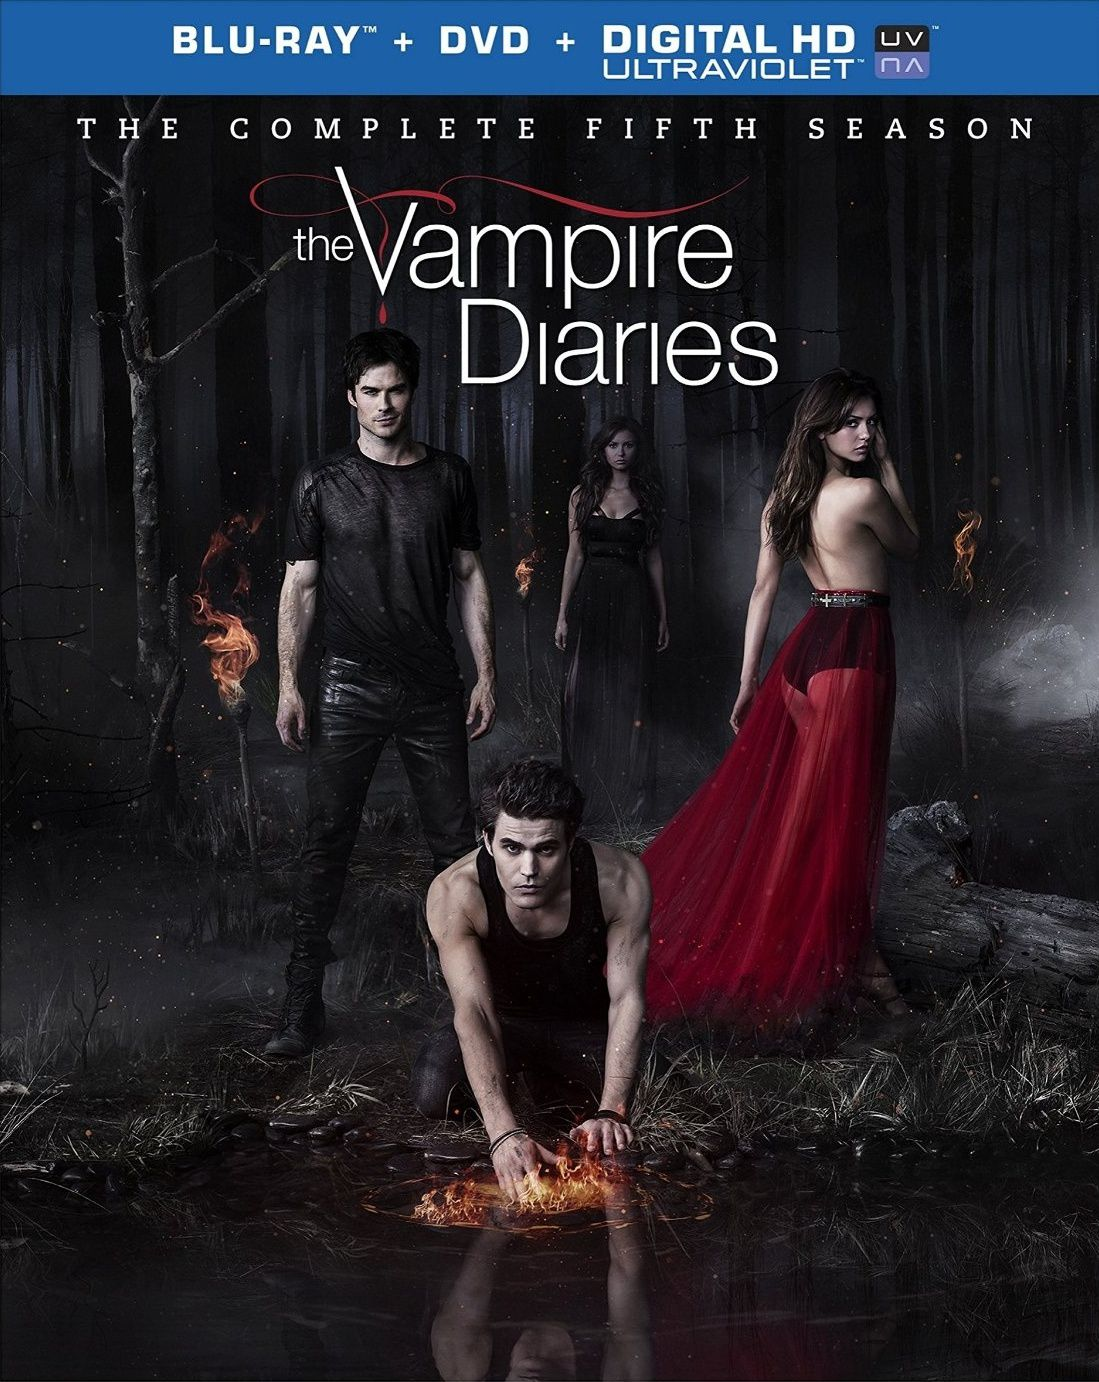 Vampire diaries saison 5 en dvd/blu-ray/digital ultraviolet